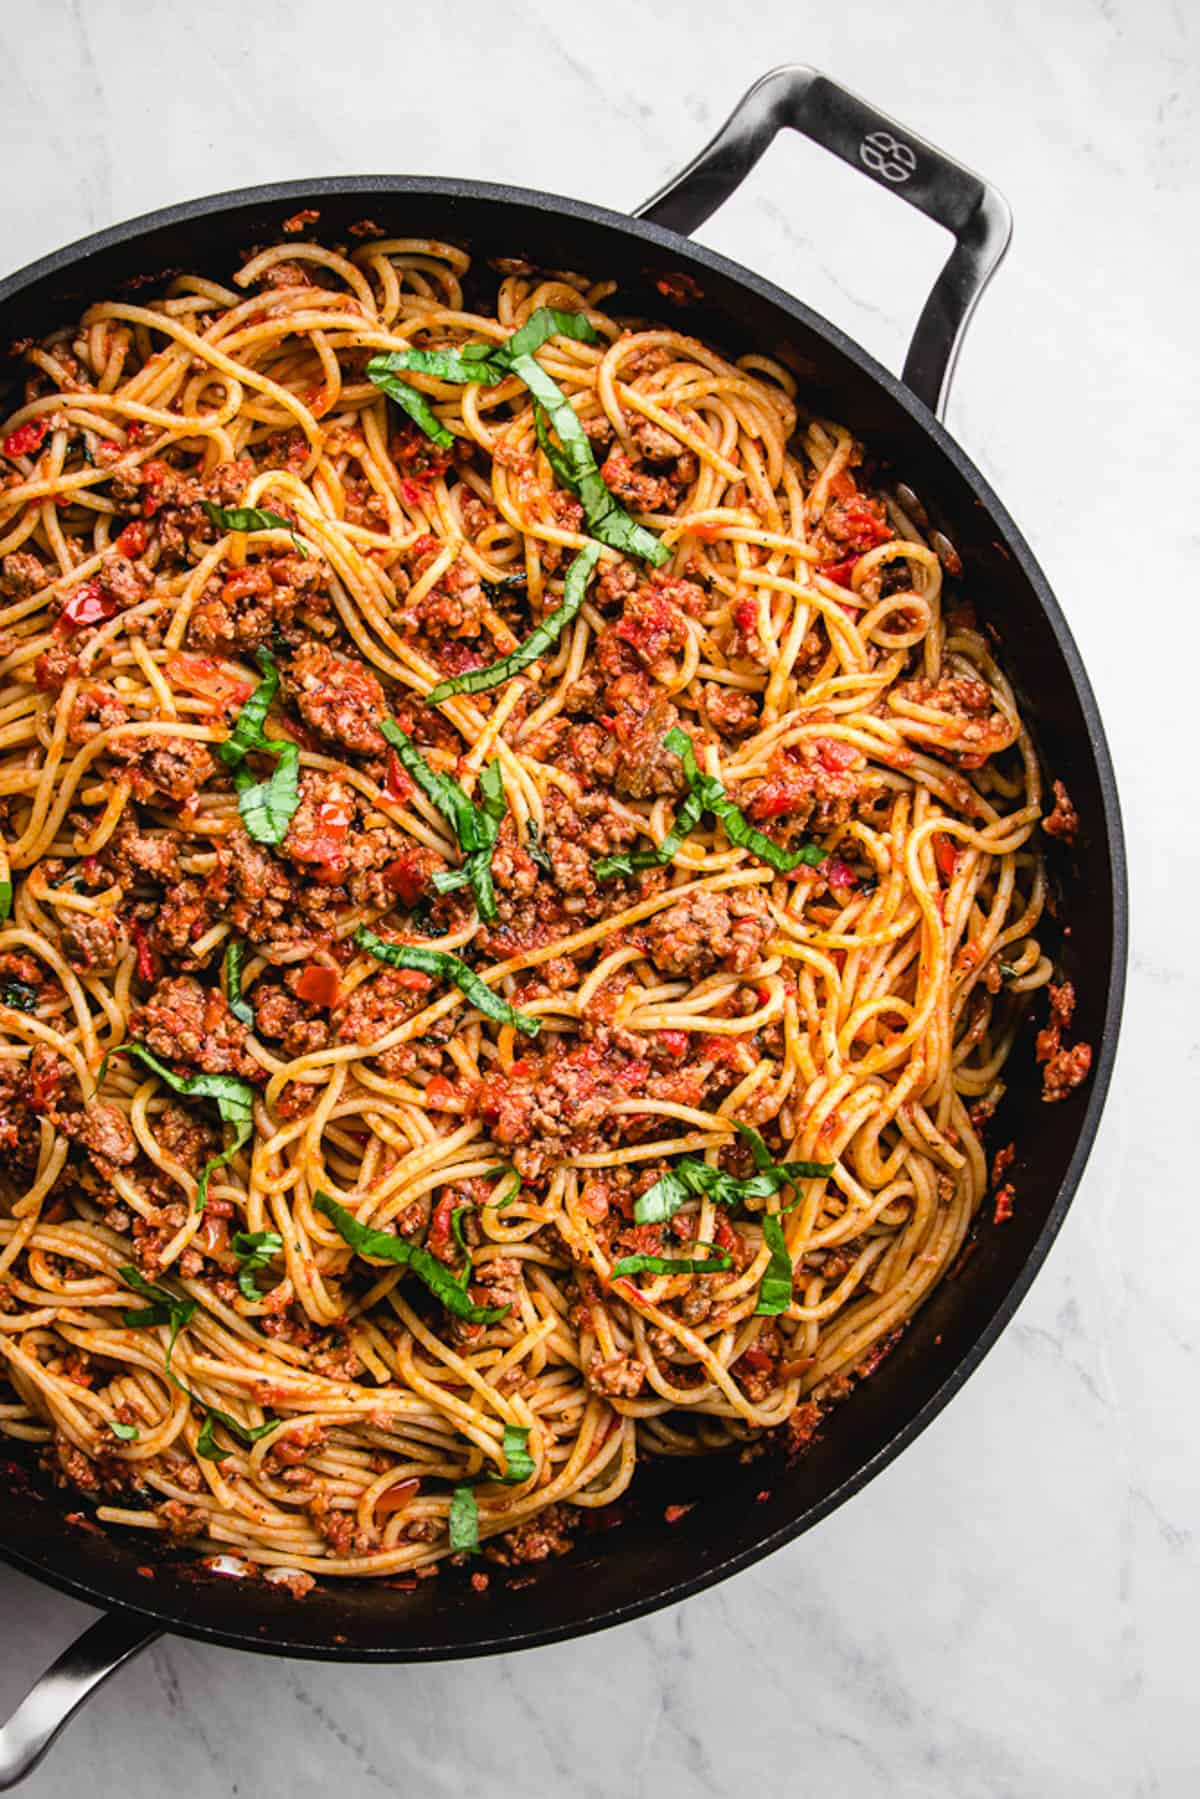 pasta with meat sauce in a skillet.